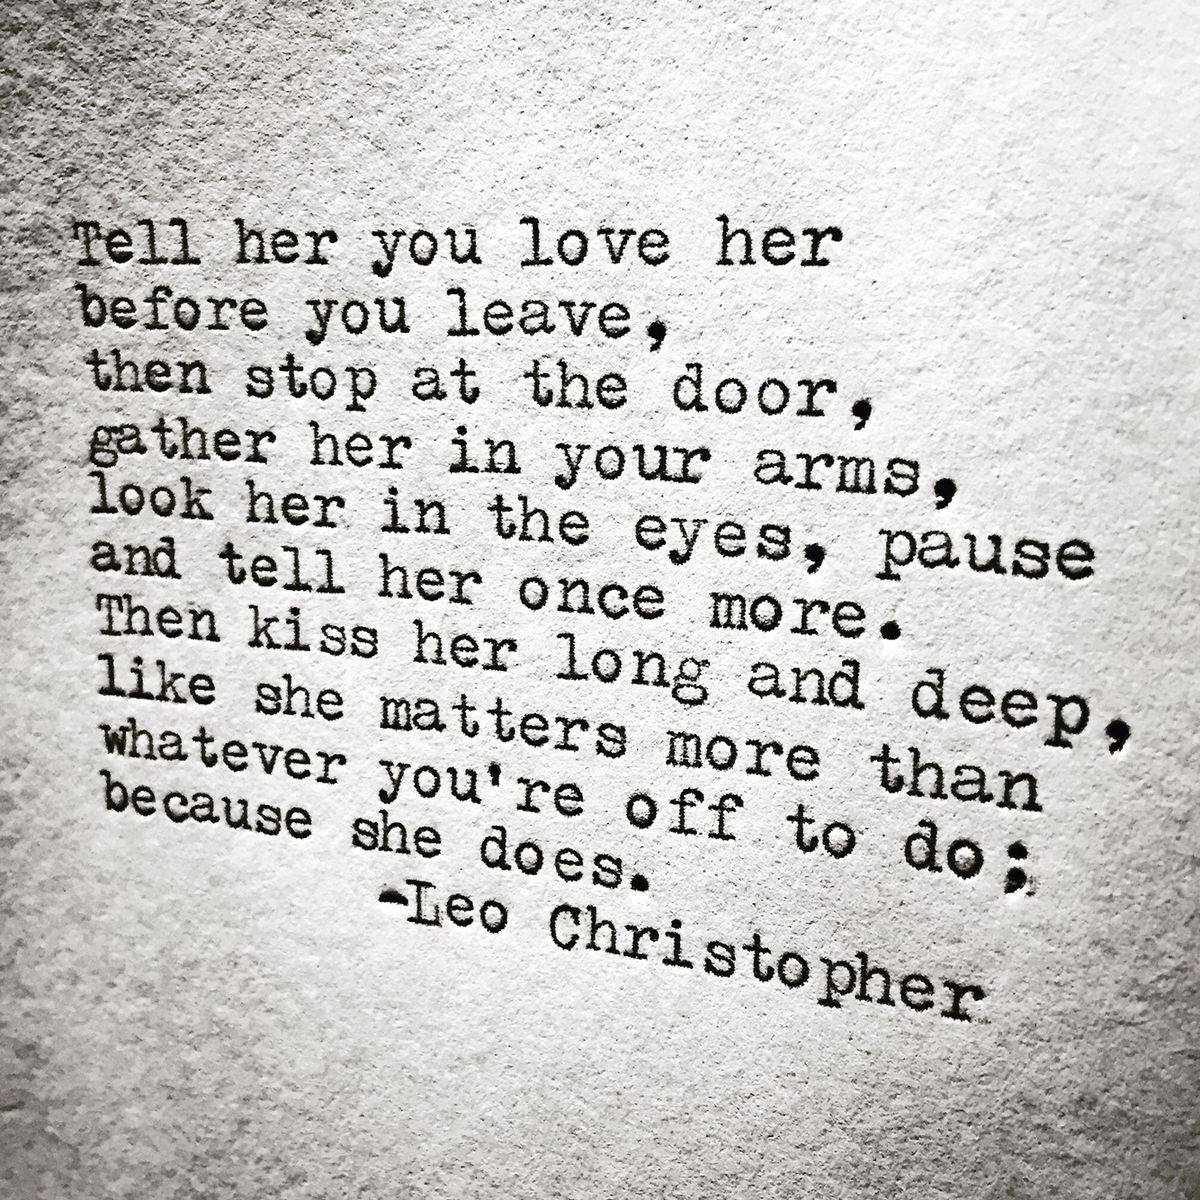 Mad Love Quotes Longings  Spaces Of The Heart. Pinterest  Spaces